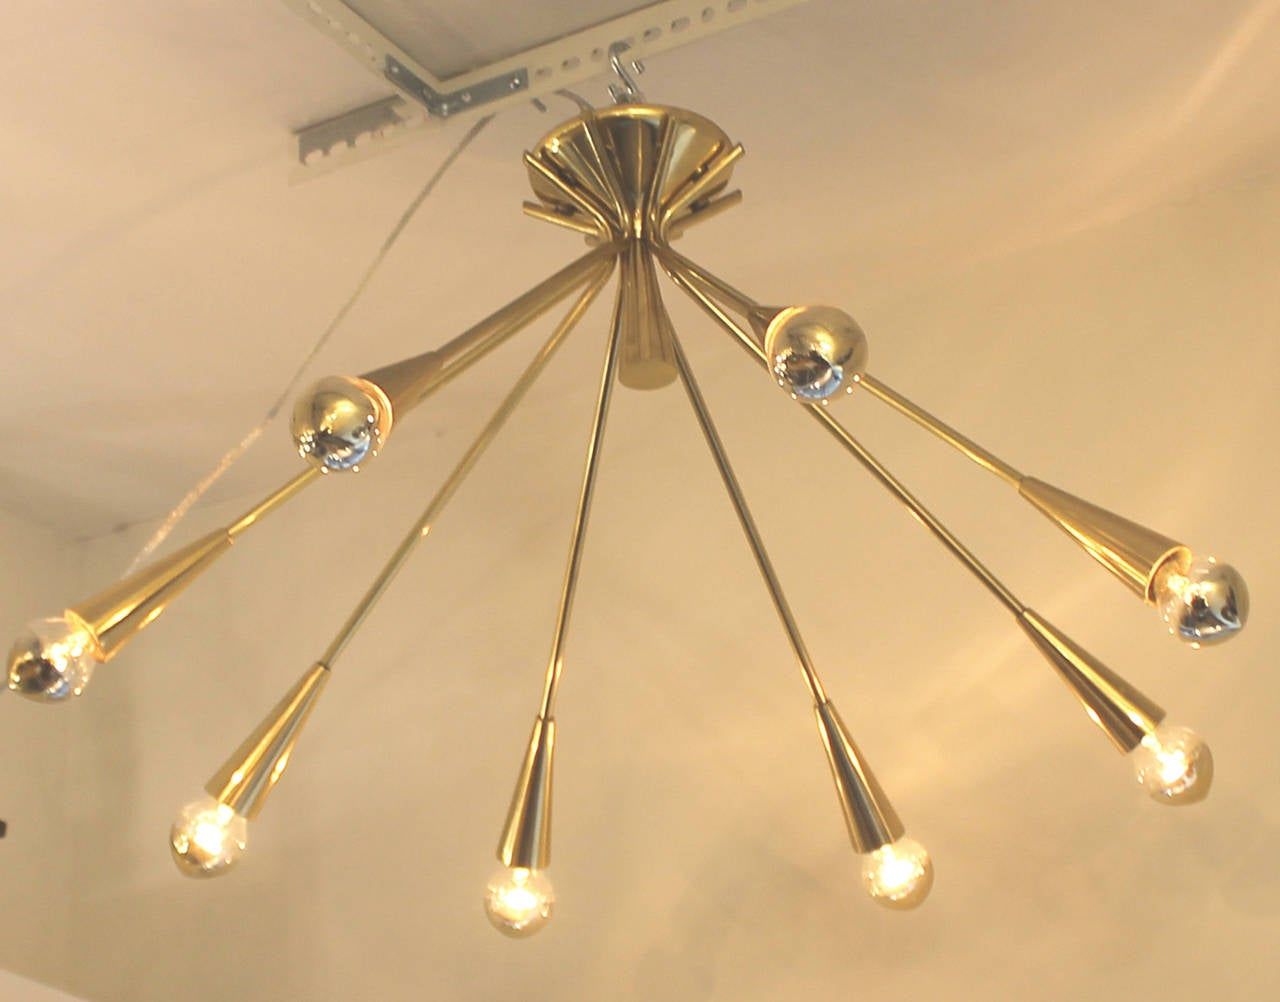 Italian Pair of Brass Semi-Sputnik Chandeliers by Lumi, Italy, 1960s For Sale